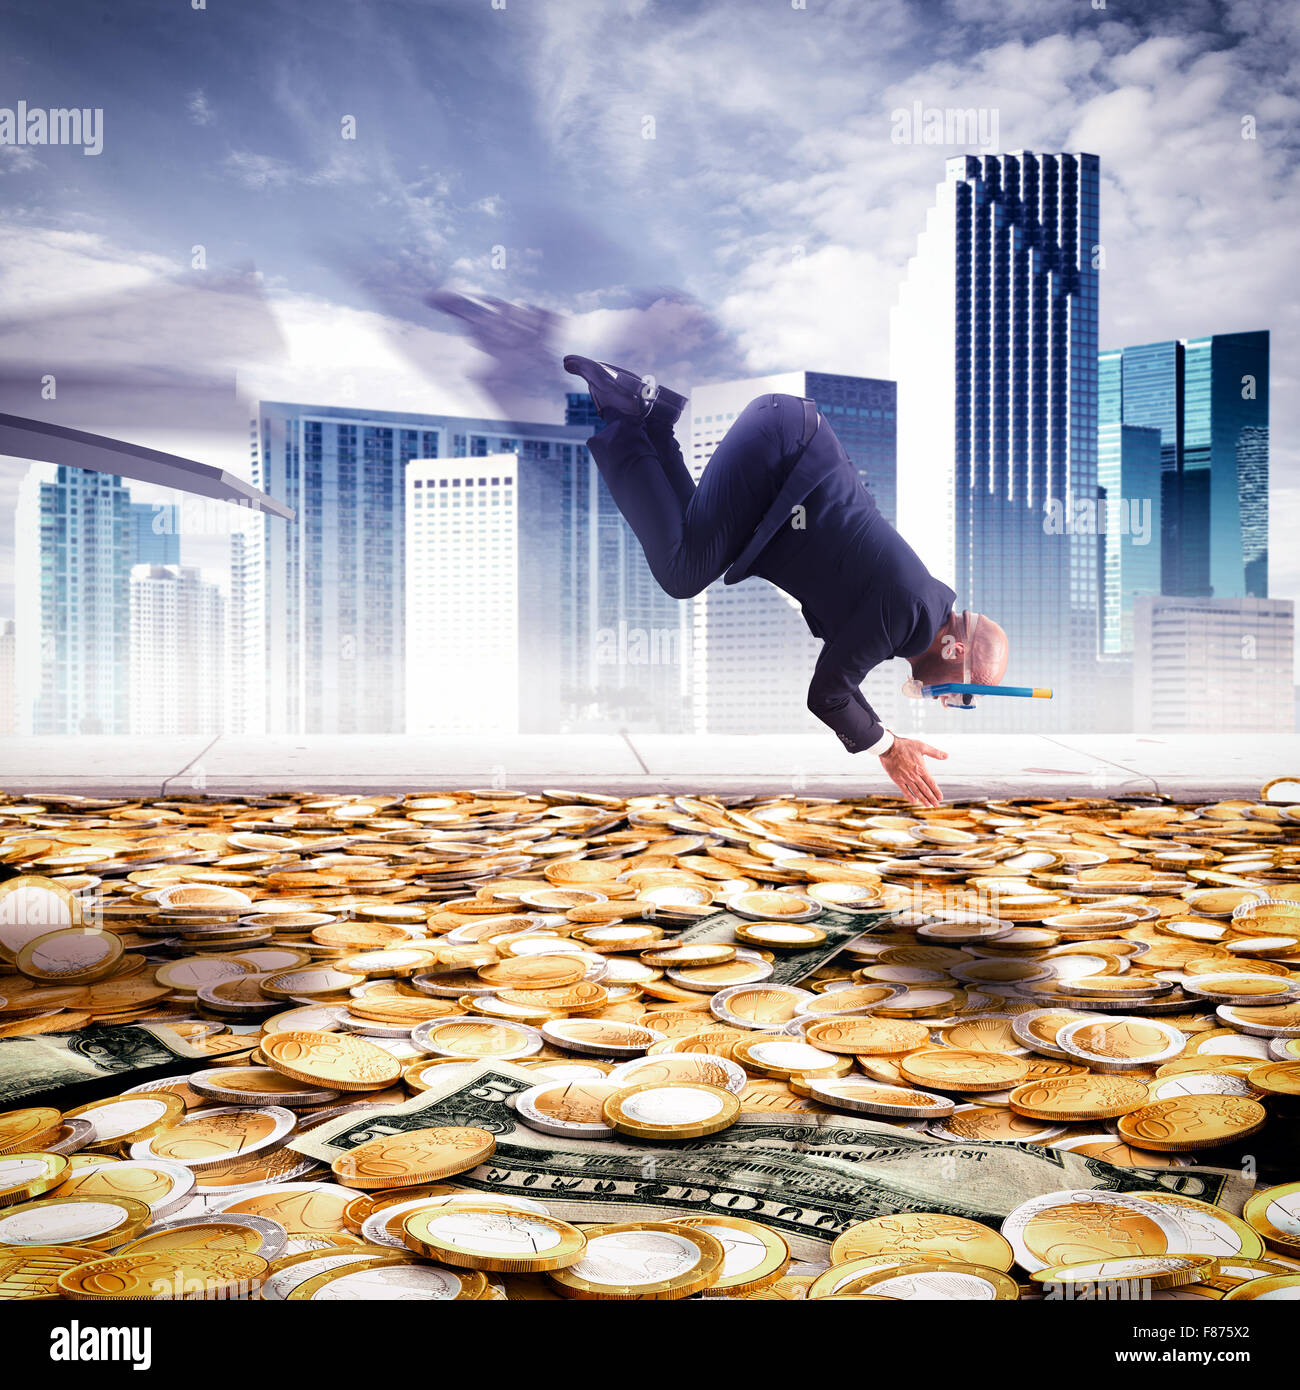 Dive into the wealth - Stock Image